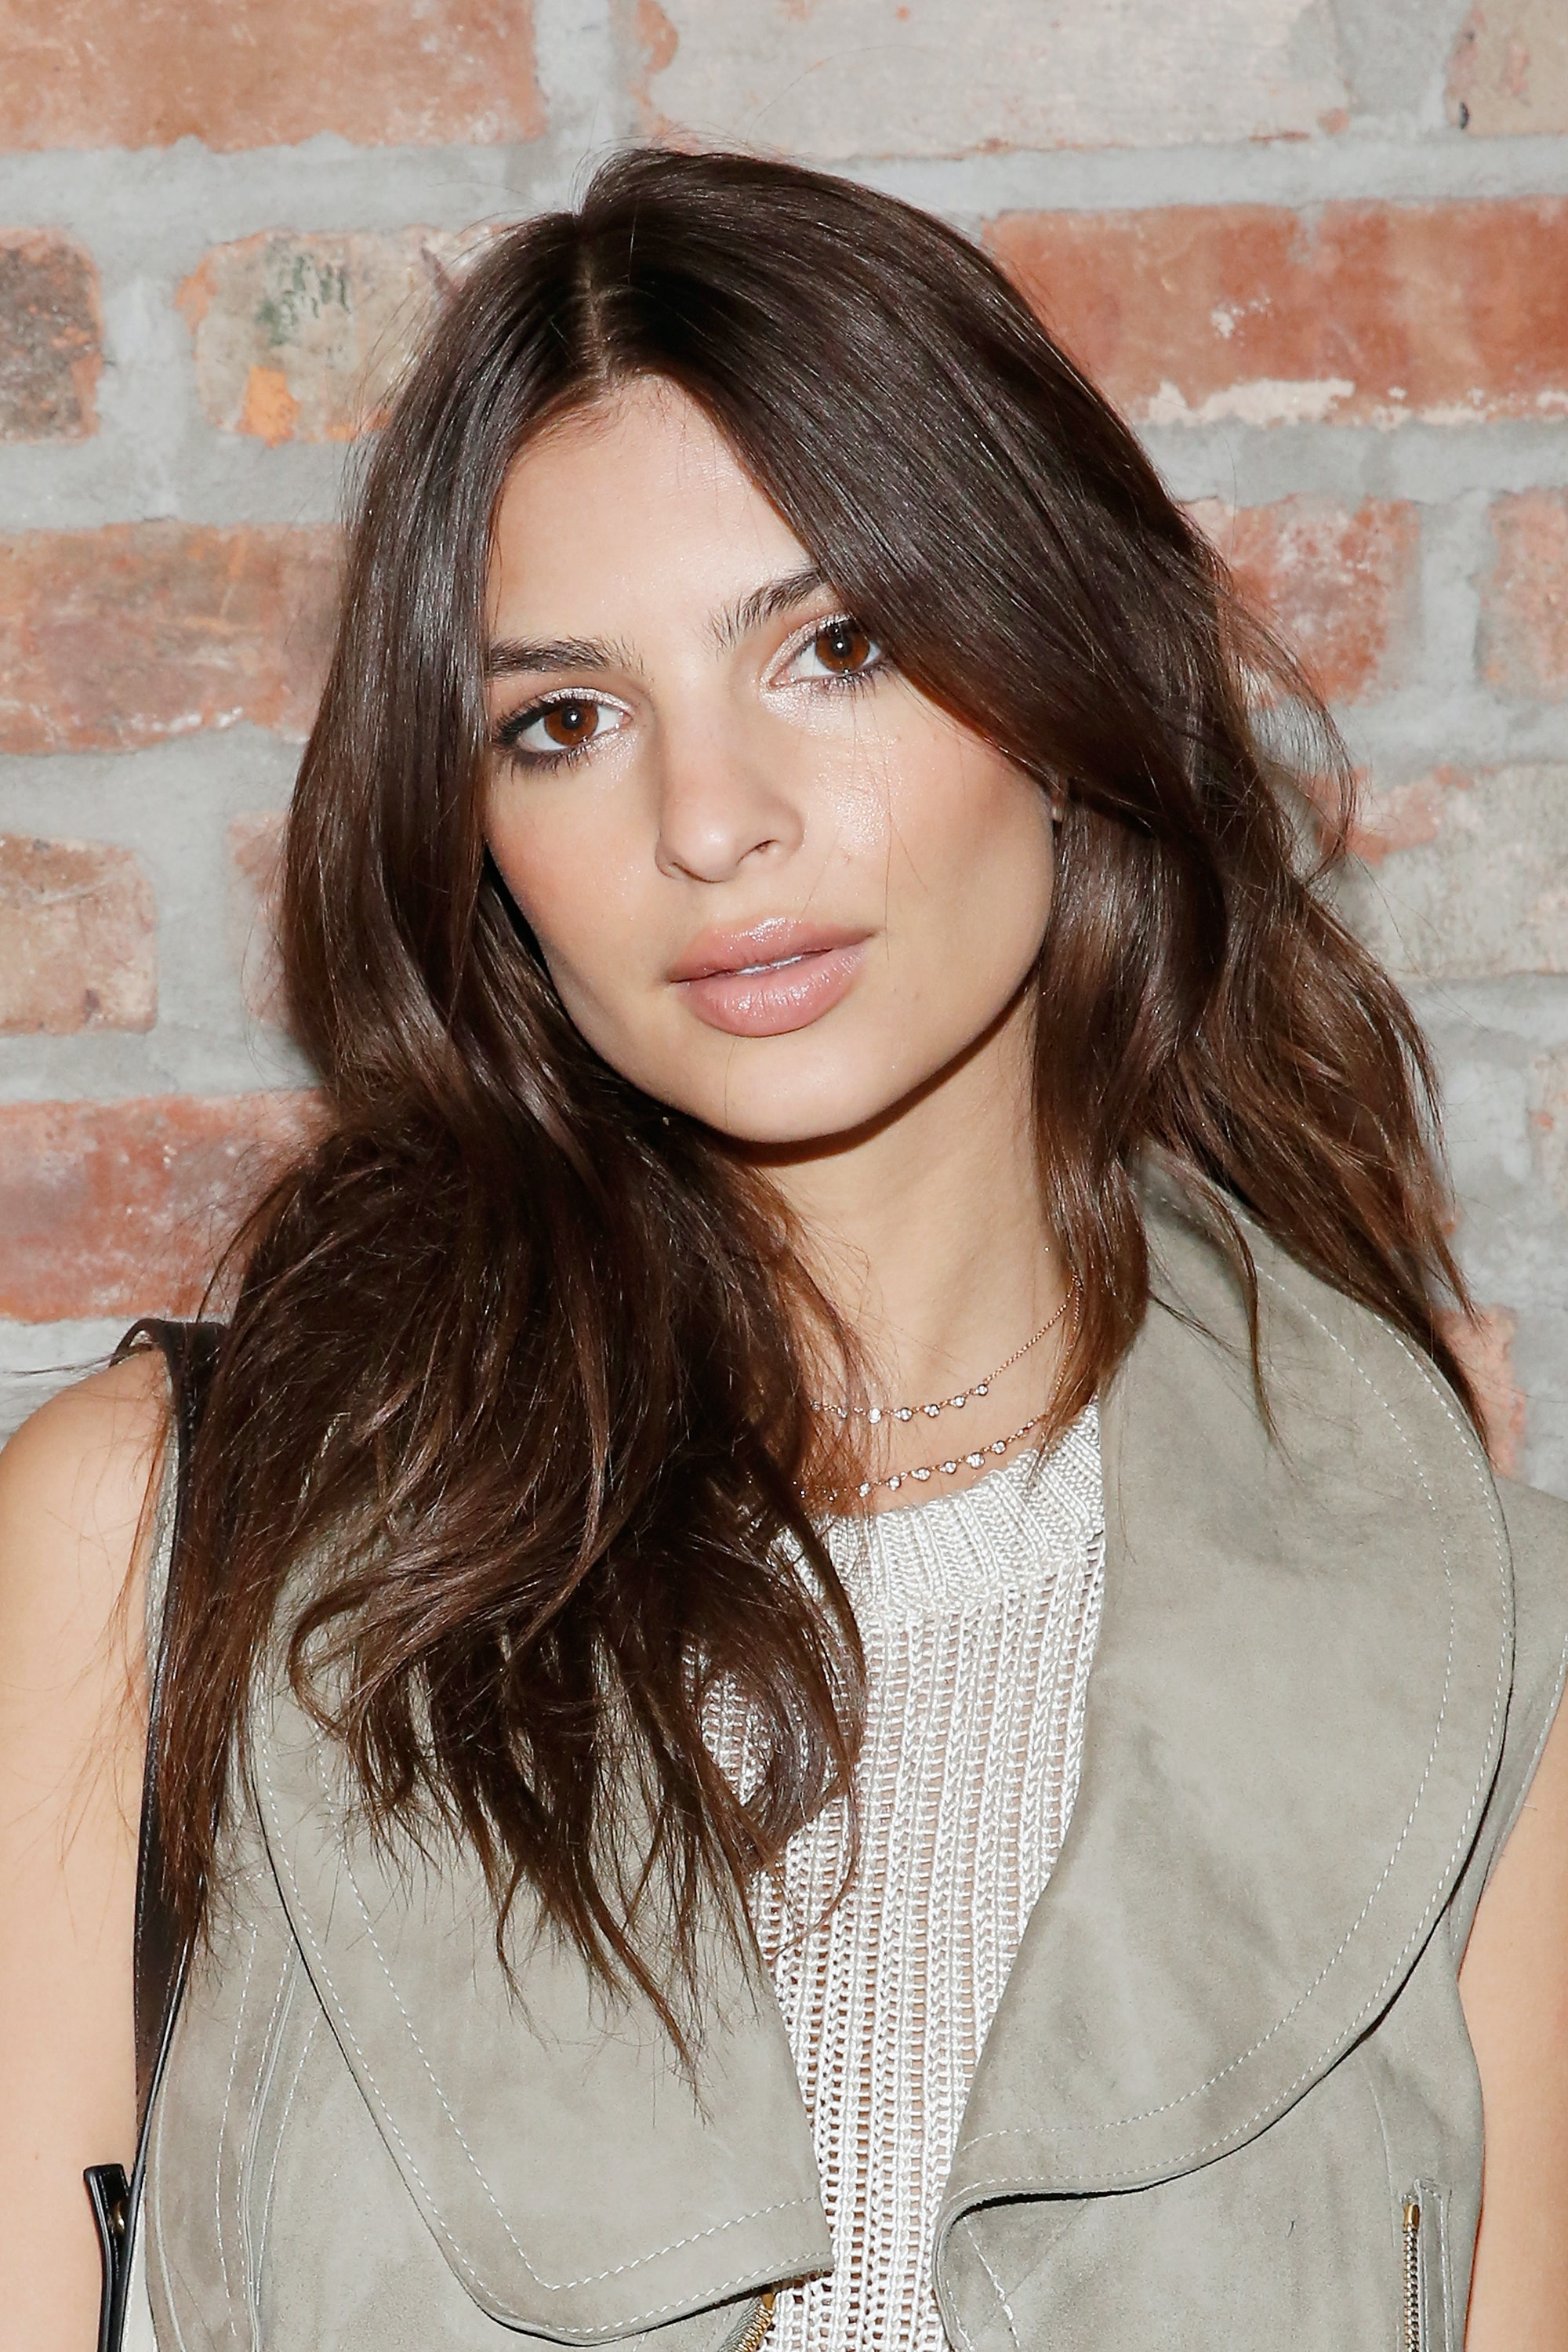 emily ratajkowski s essay about owning her sexuality gives the emily ratajkowski s essay about owning her sexuality gives the blurred lines music video new meaning